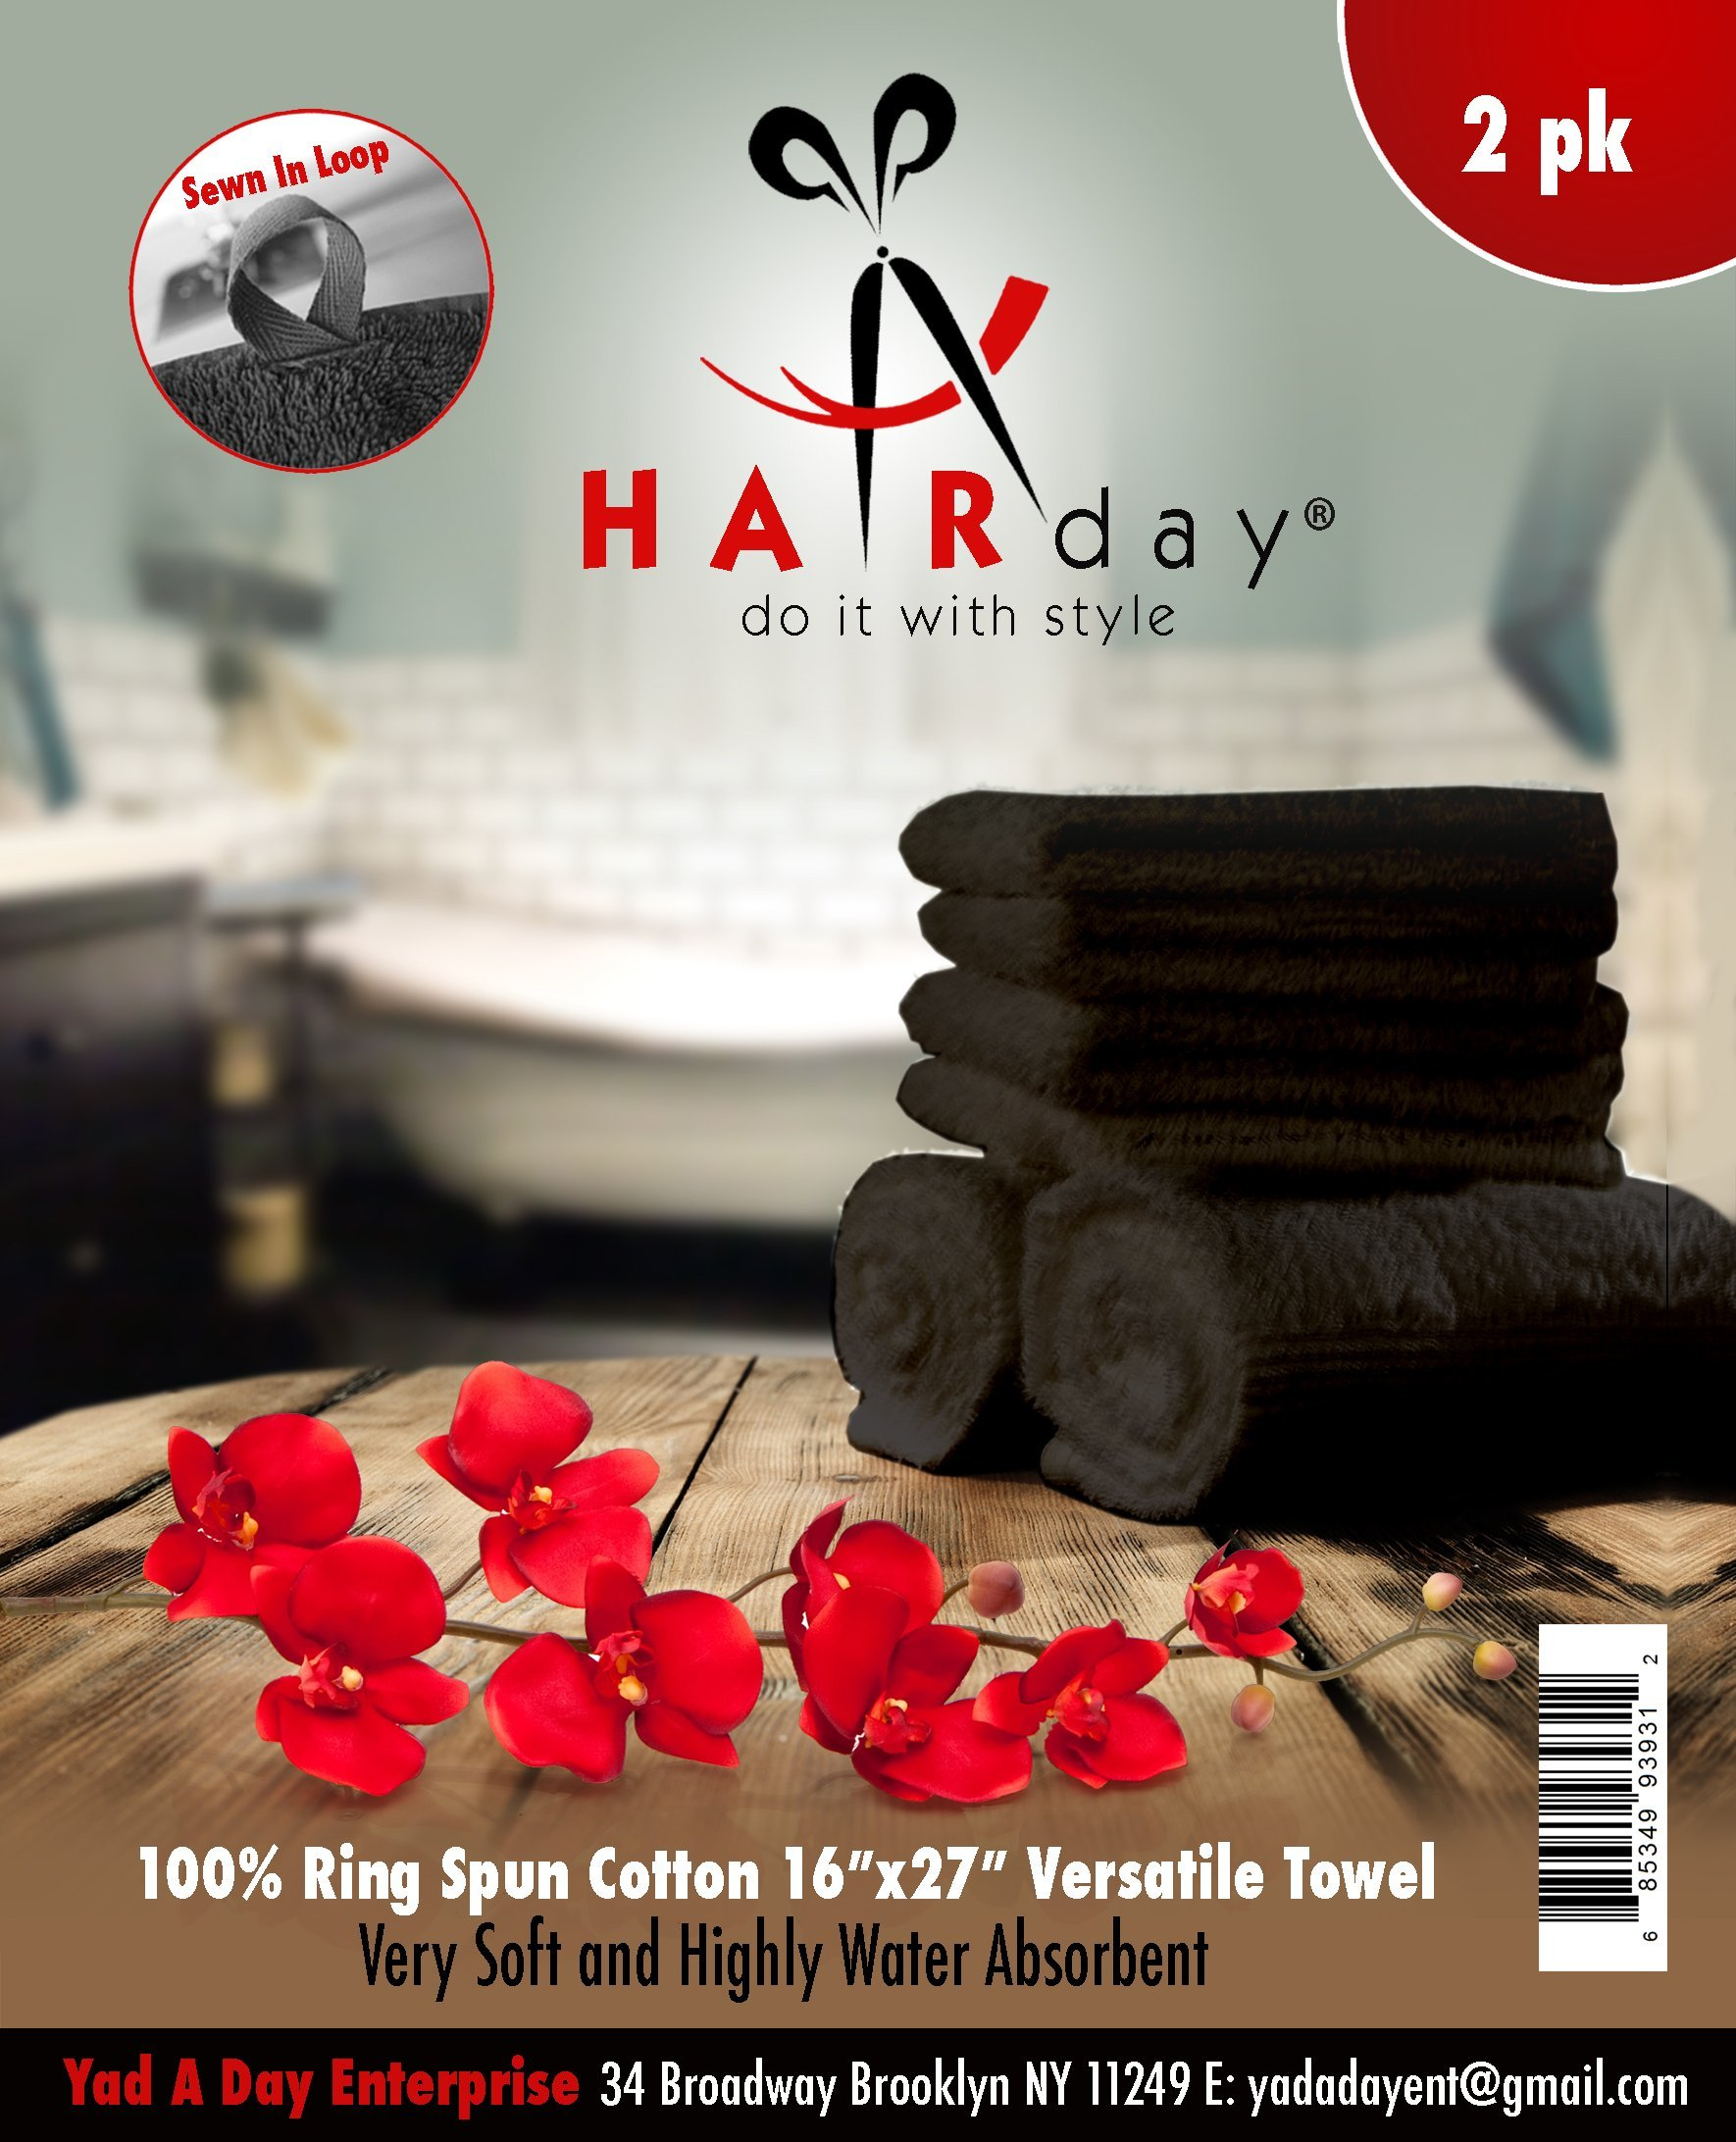 Hand Towels for Hair Salon, Spa, Gym, Home, Bath & Kitchen by Hairday Care Professionals (Two-Pack, Black)